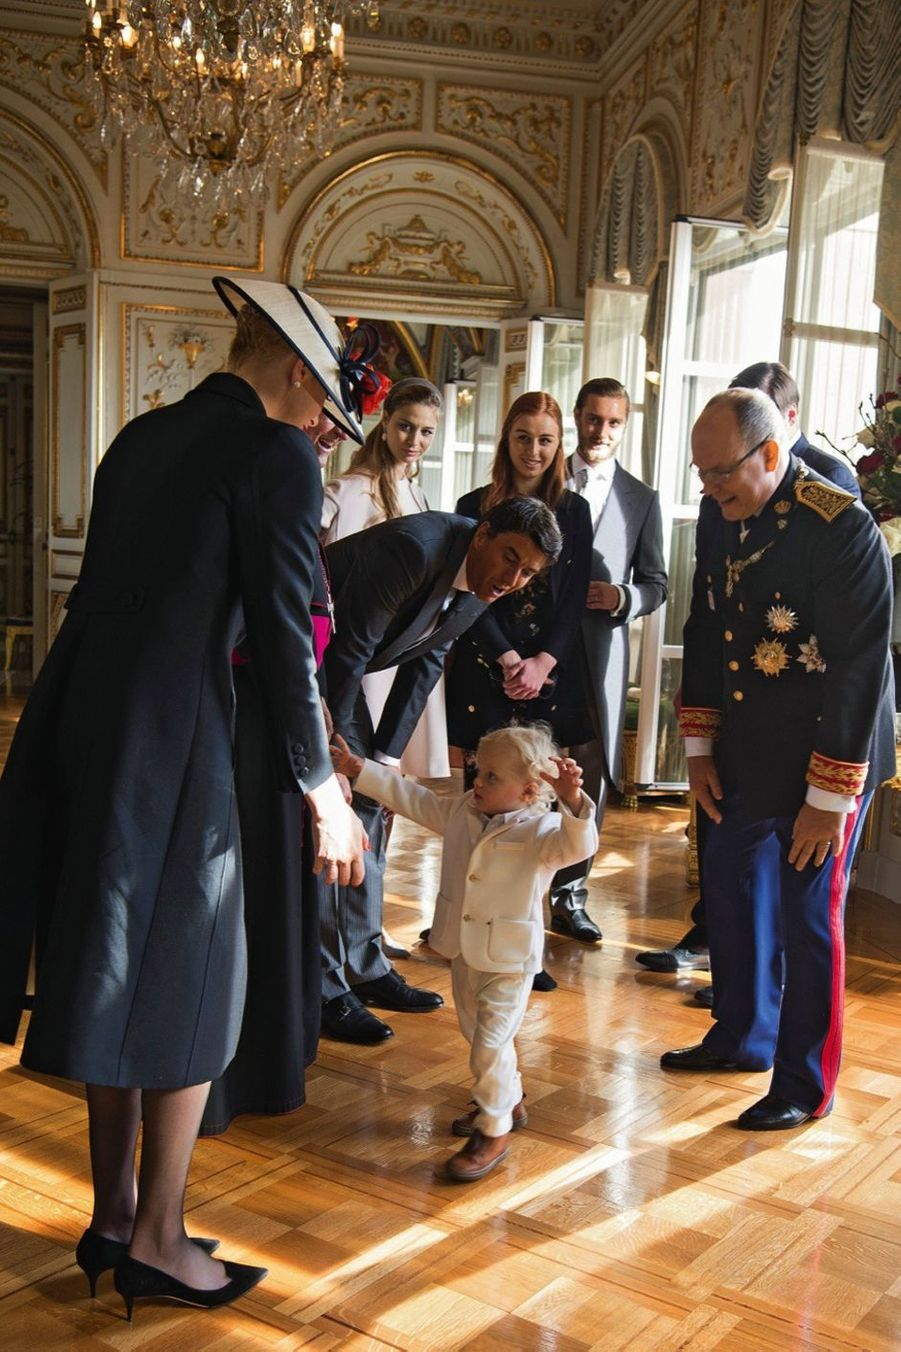 Dans le salon des Glaces, le jeune prince Jacques sait capter l'attention de son public.